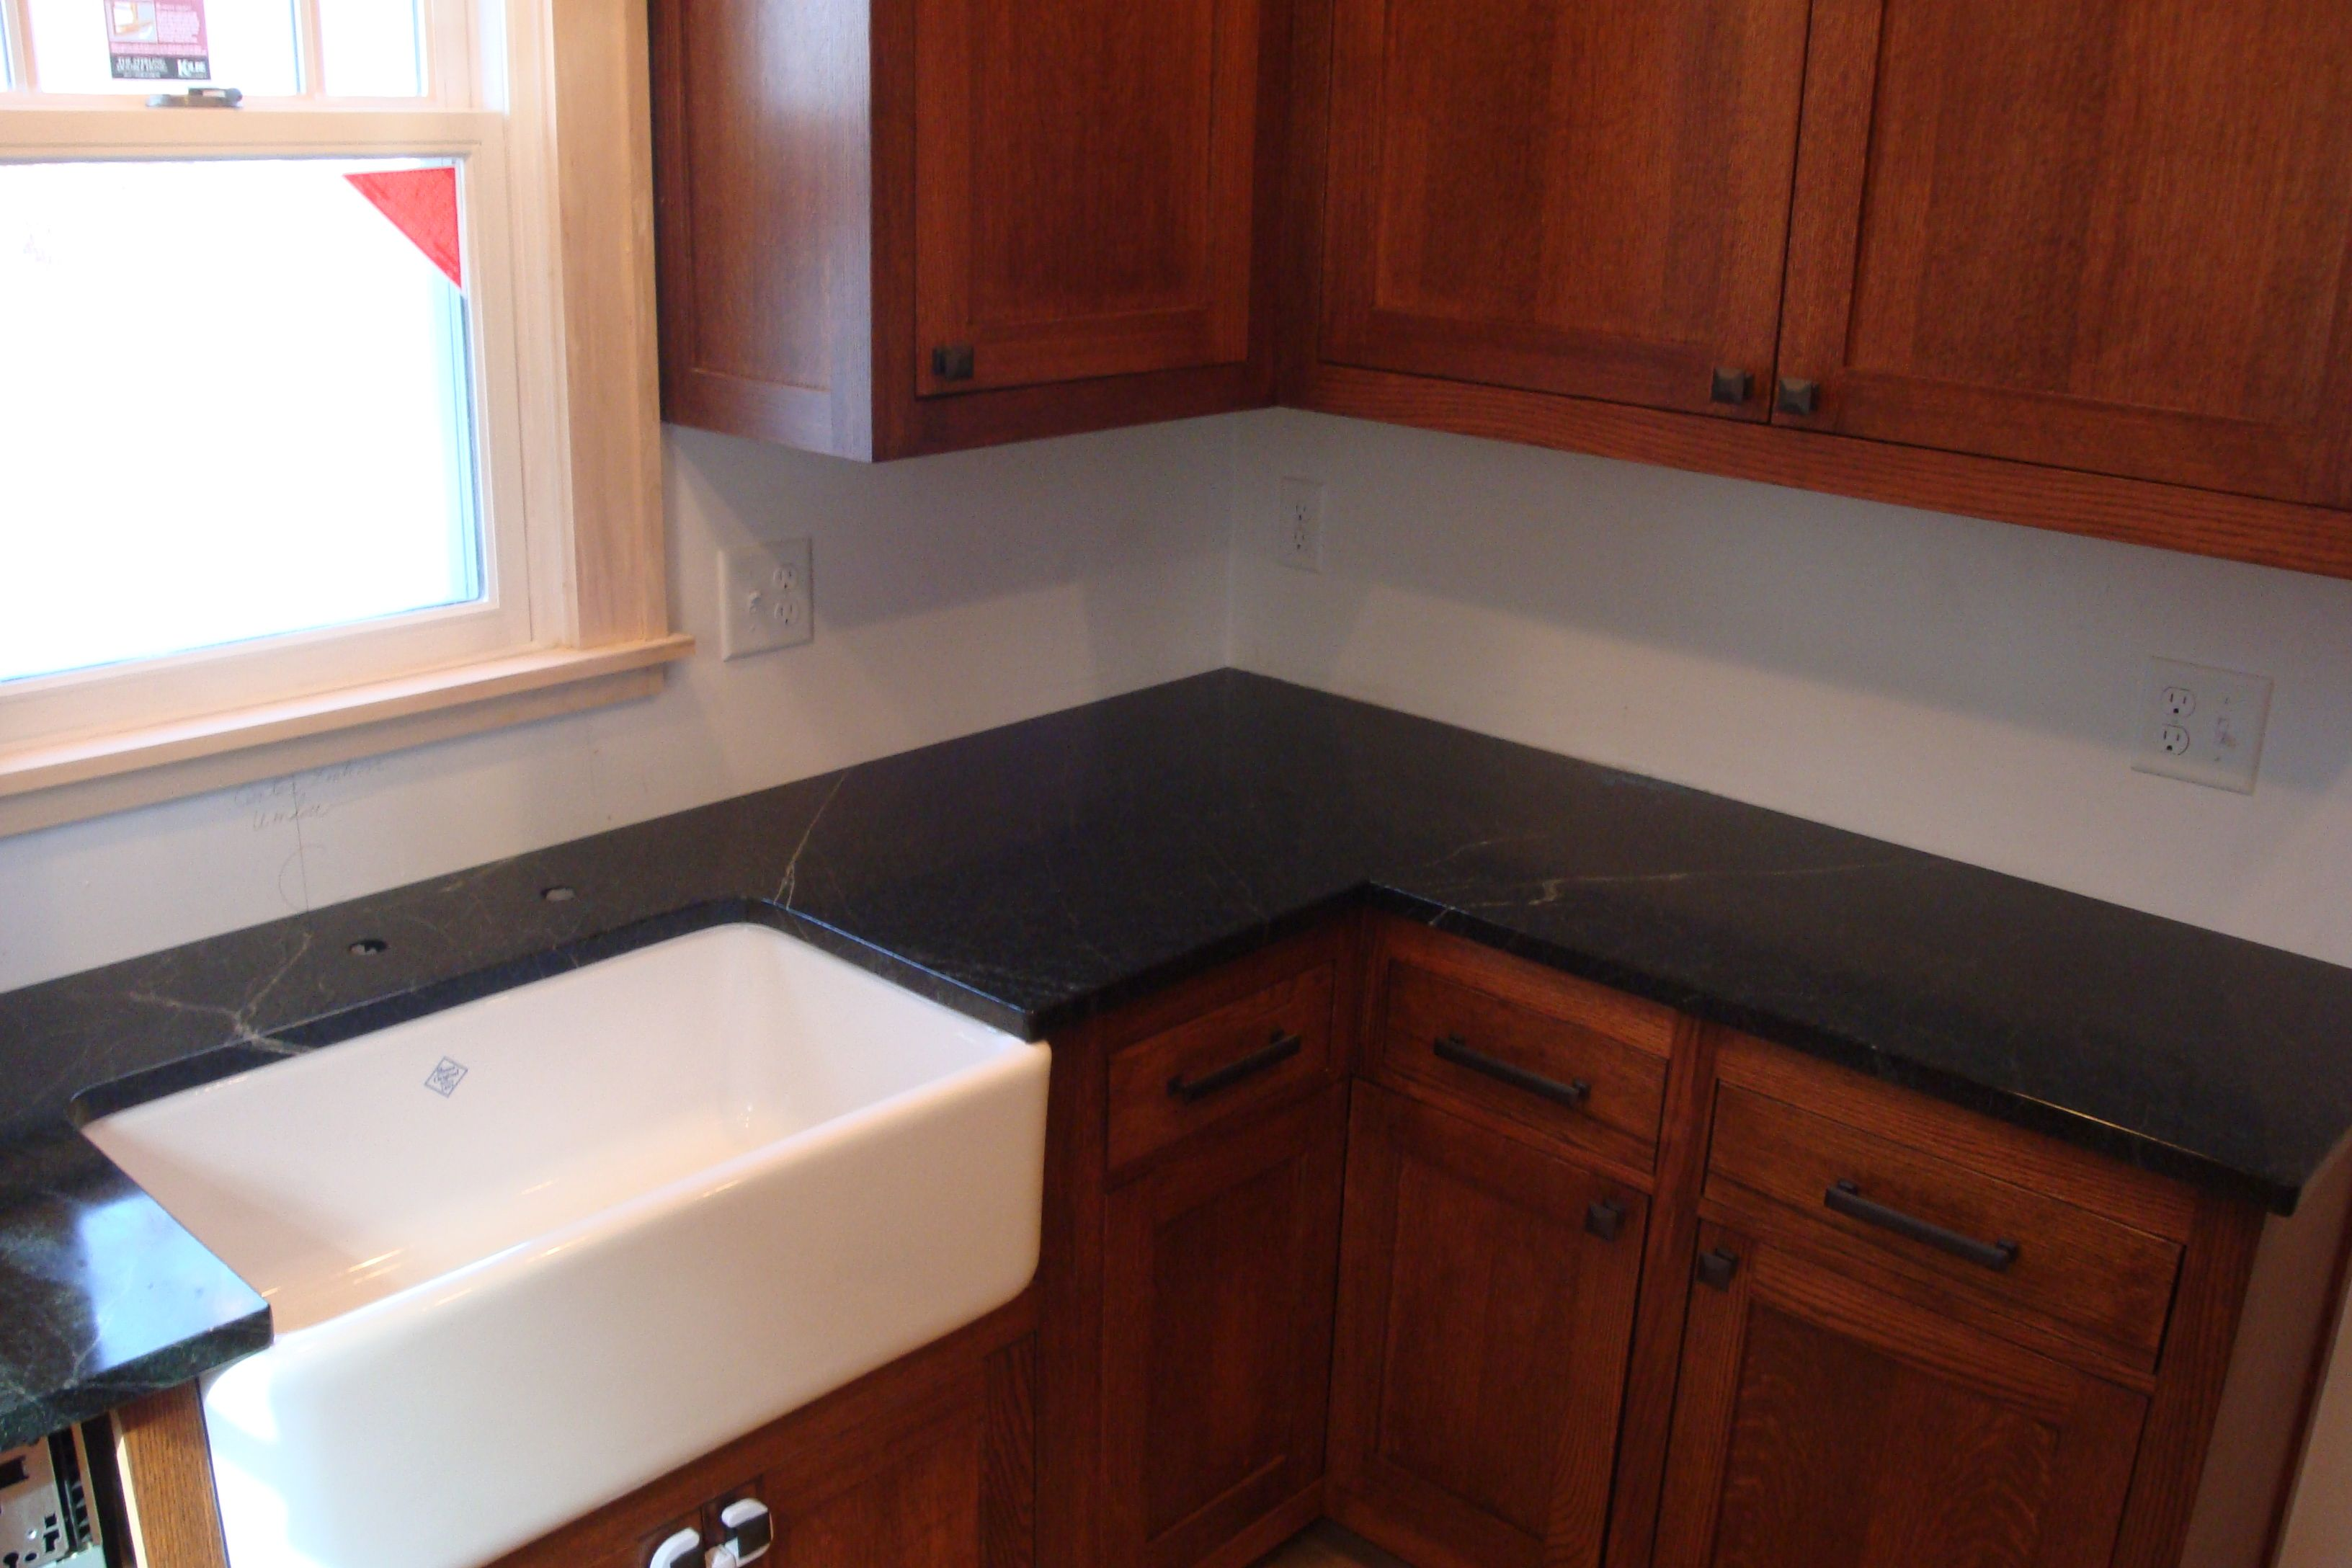 Modern Kitchens With Soapstone Counters Kitchen Countertops Price Of Granite Count Kitchen Countertops Prices Black Kitchen Countertops Countertop Design